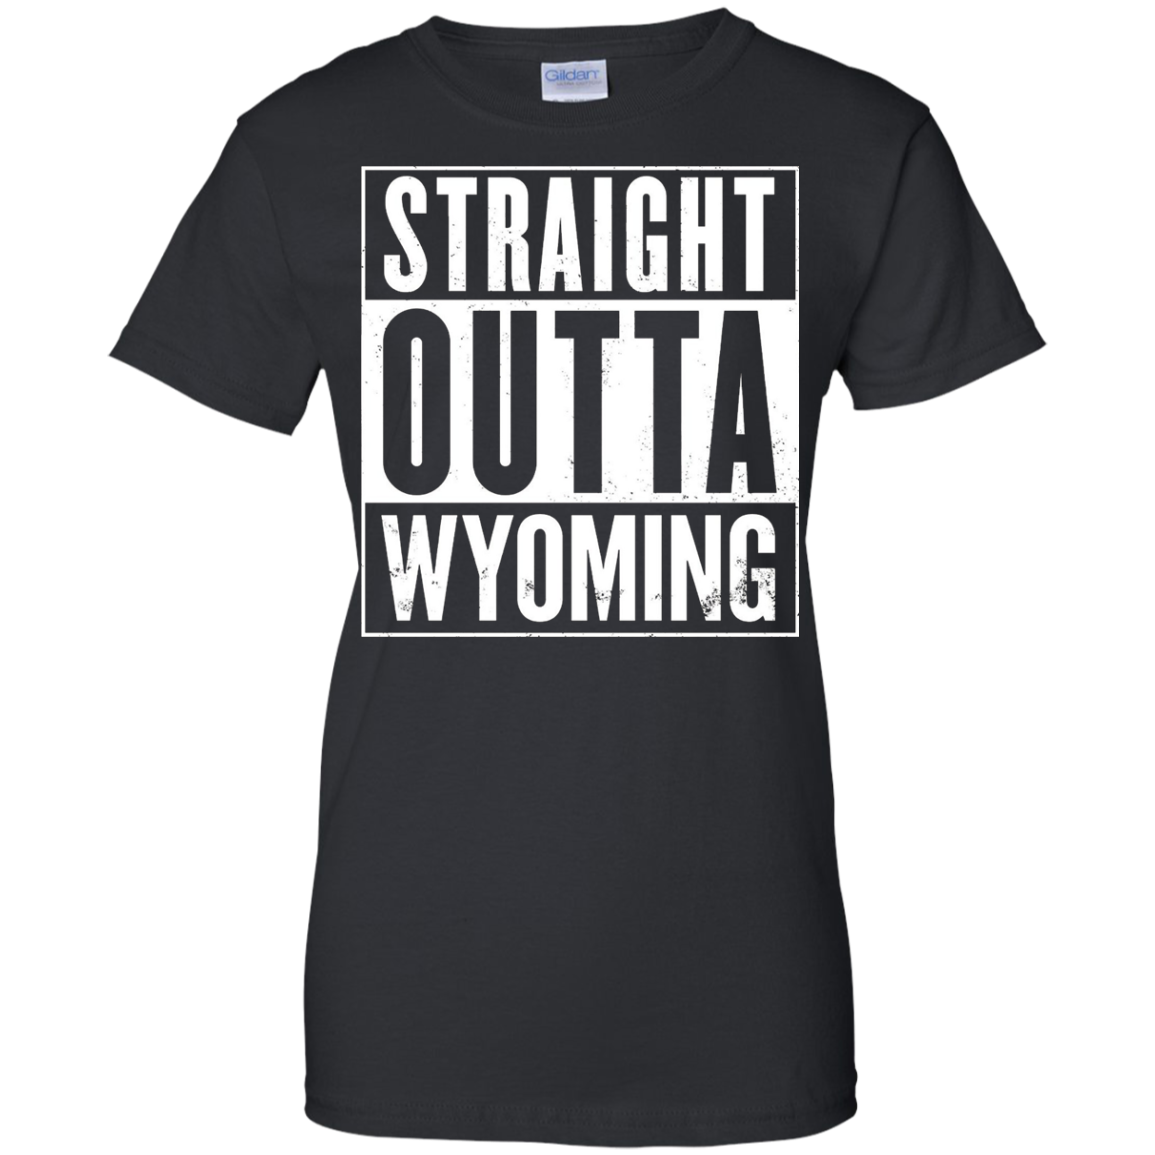 Straight Outta Wyoming Funny T-Shirt